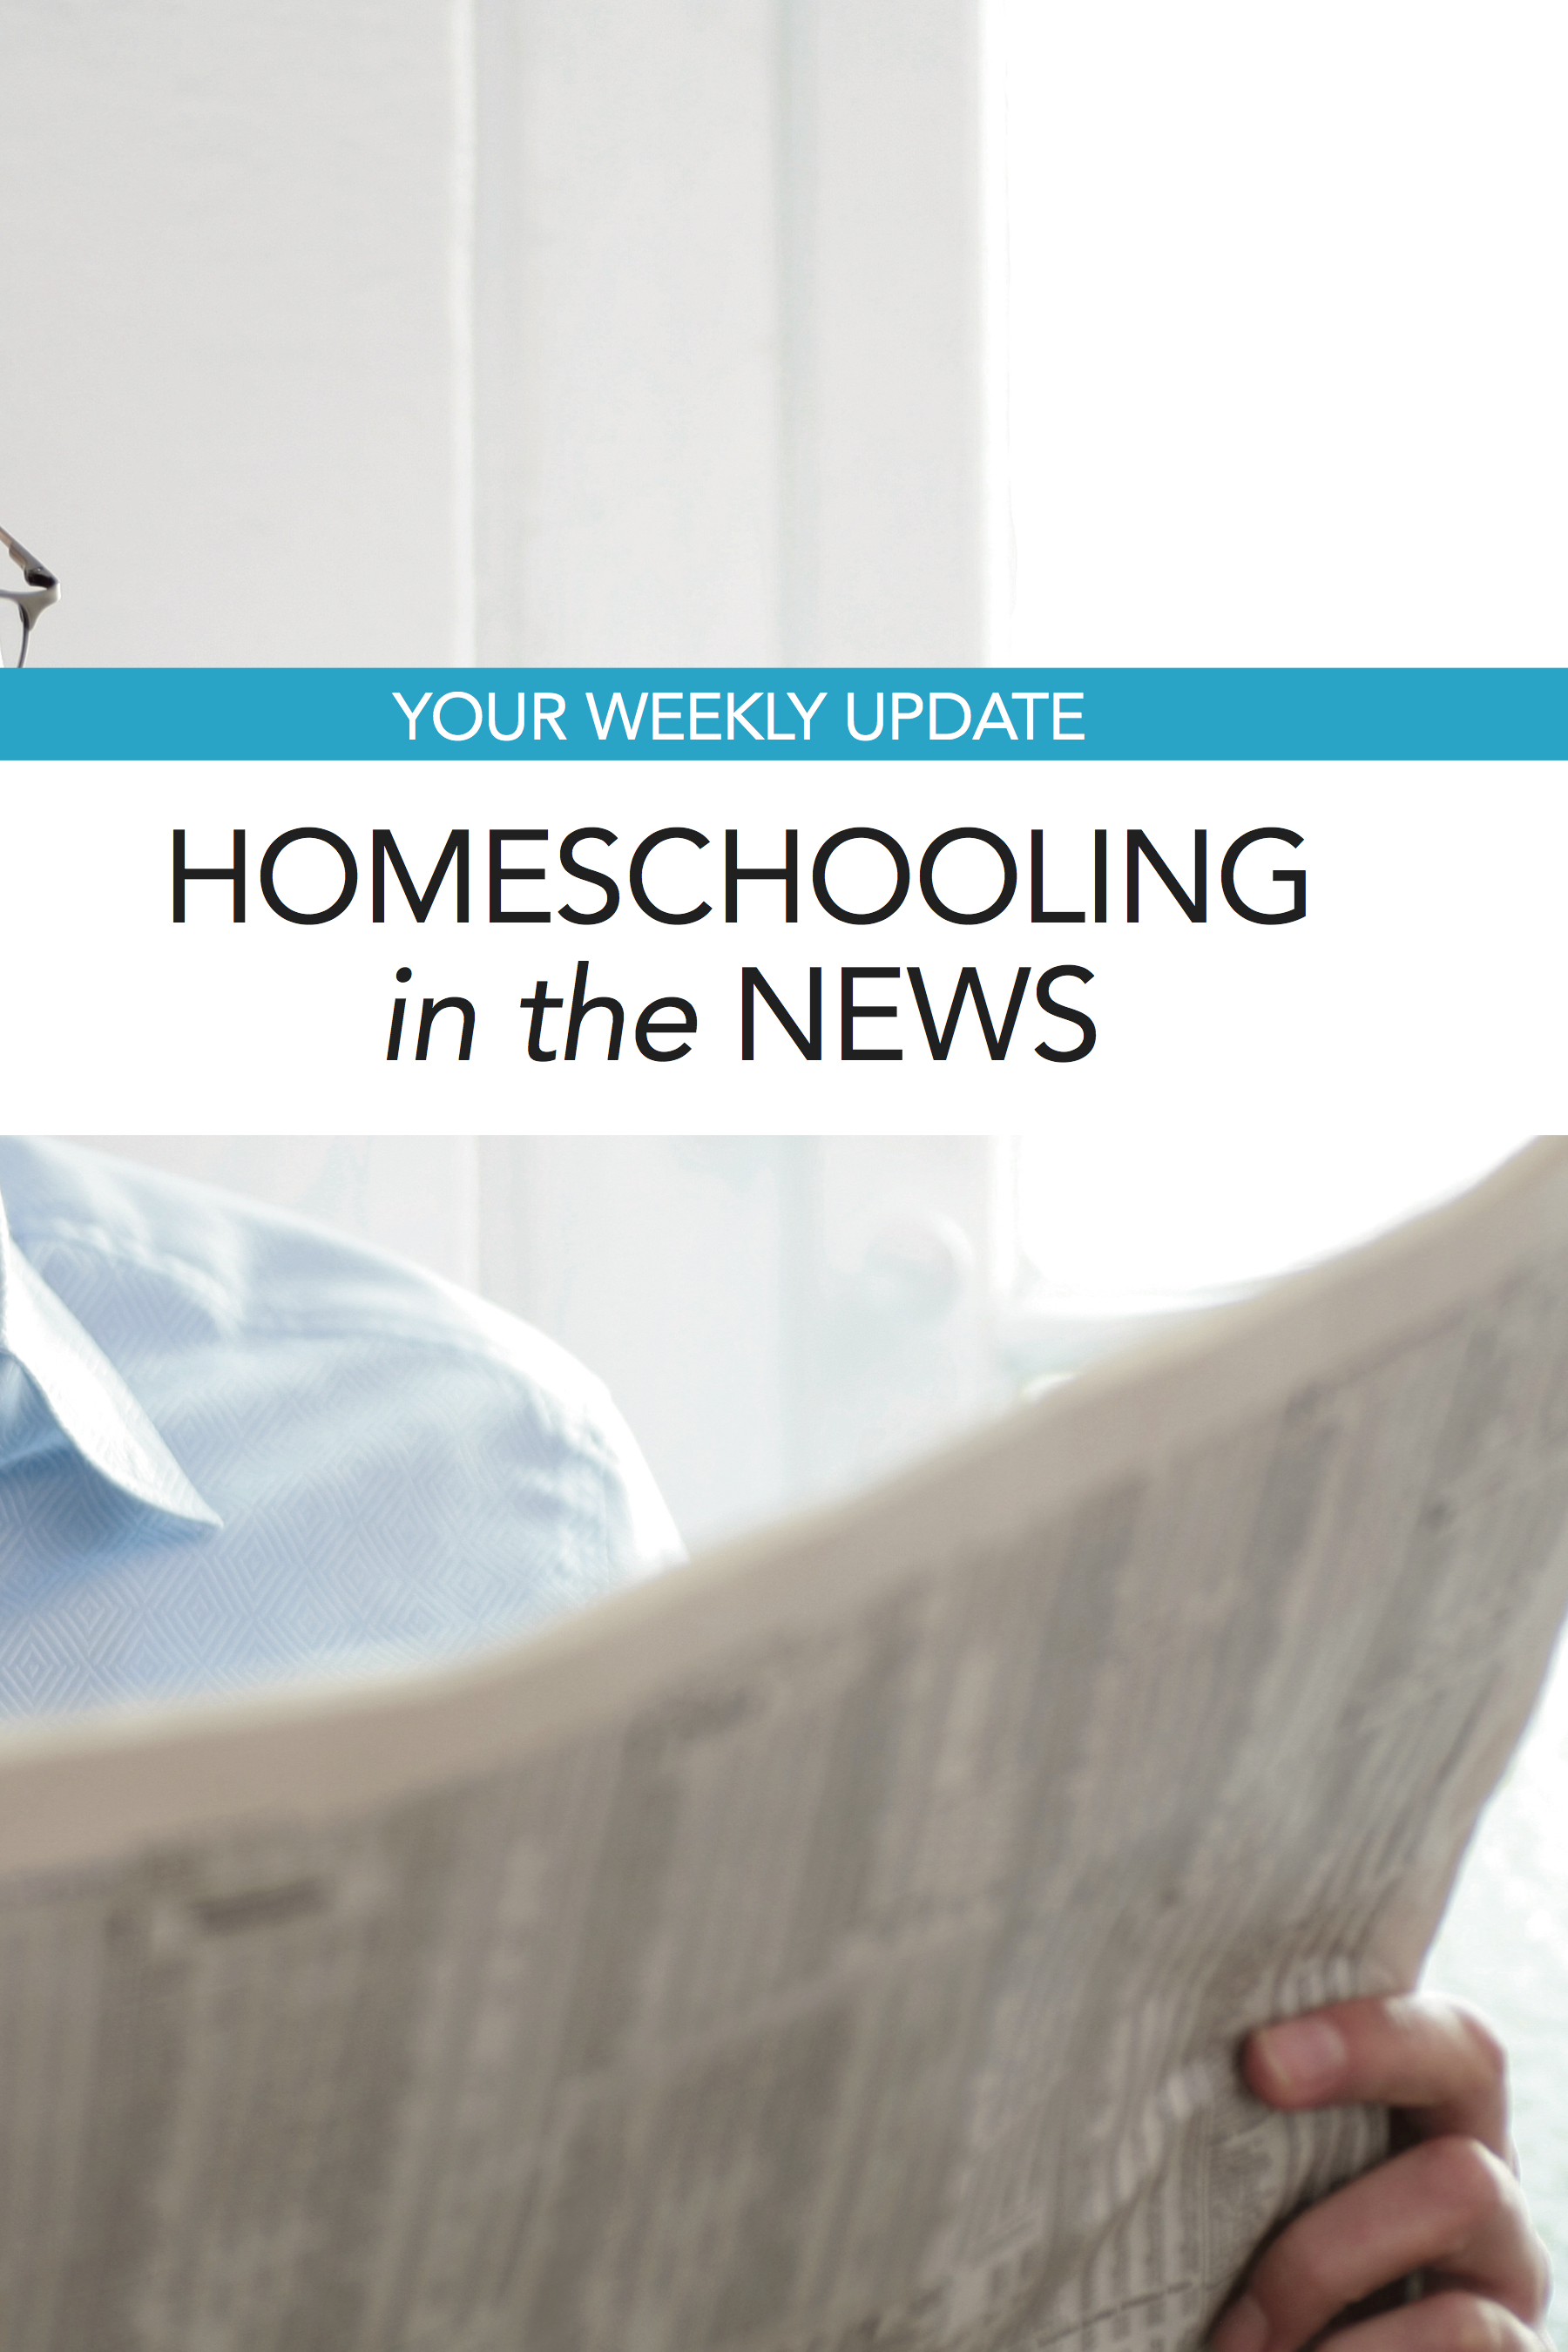 A round-up of homeschool-related news from around the world